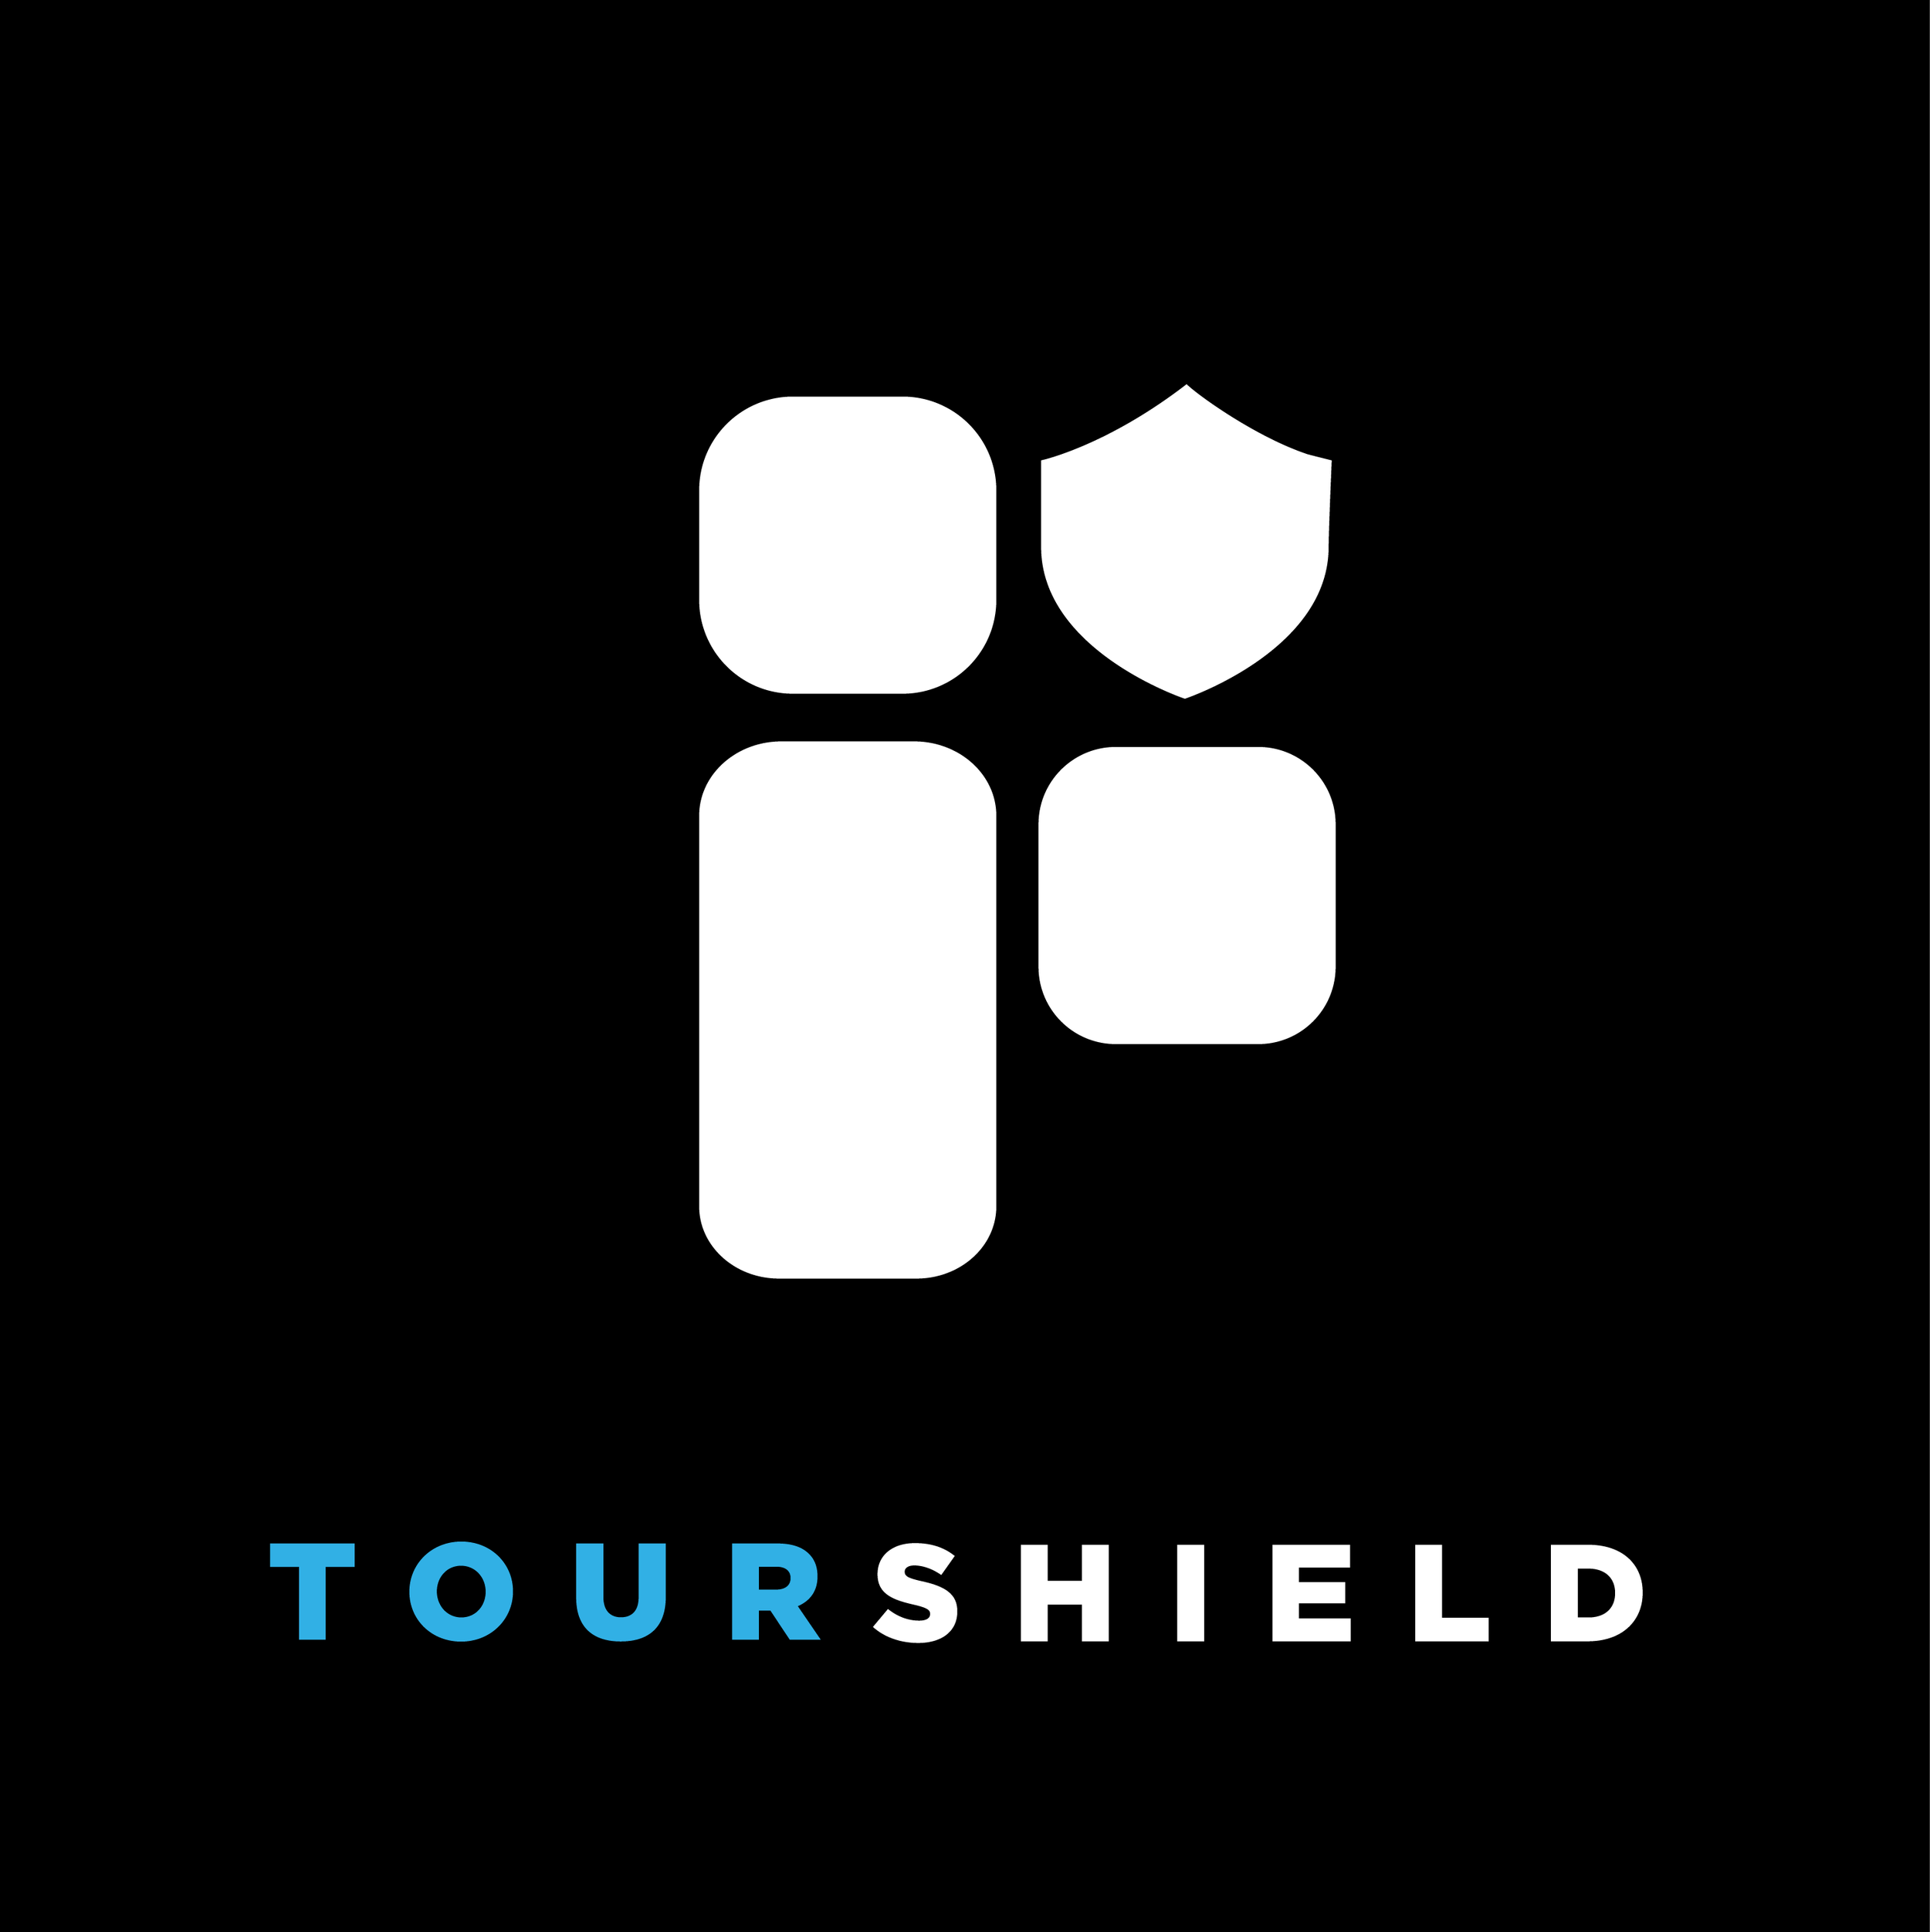 TourShield_Square_Blk (2).png